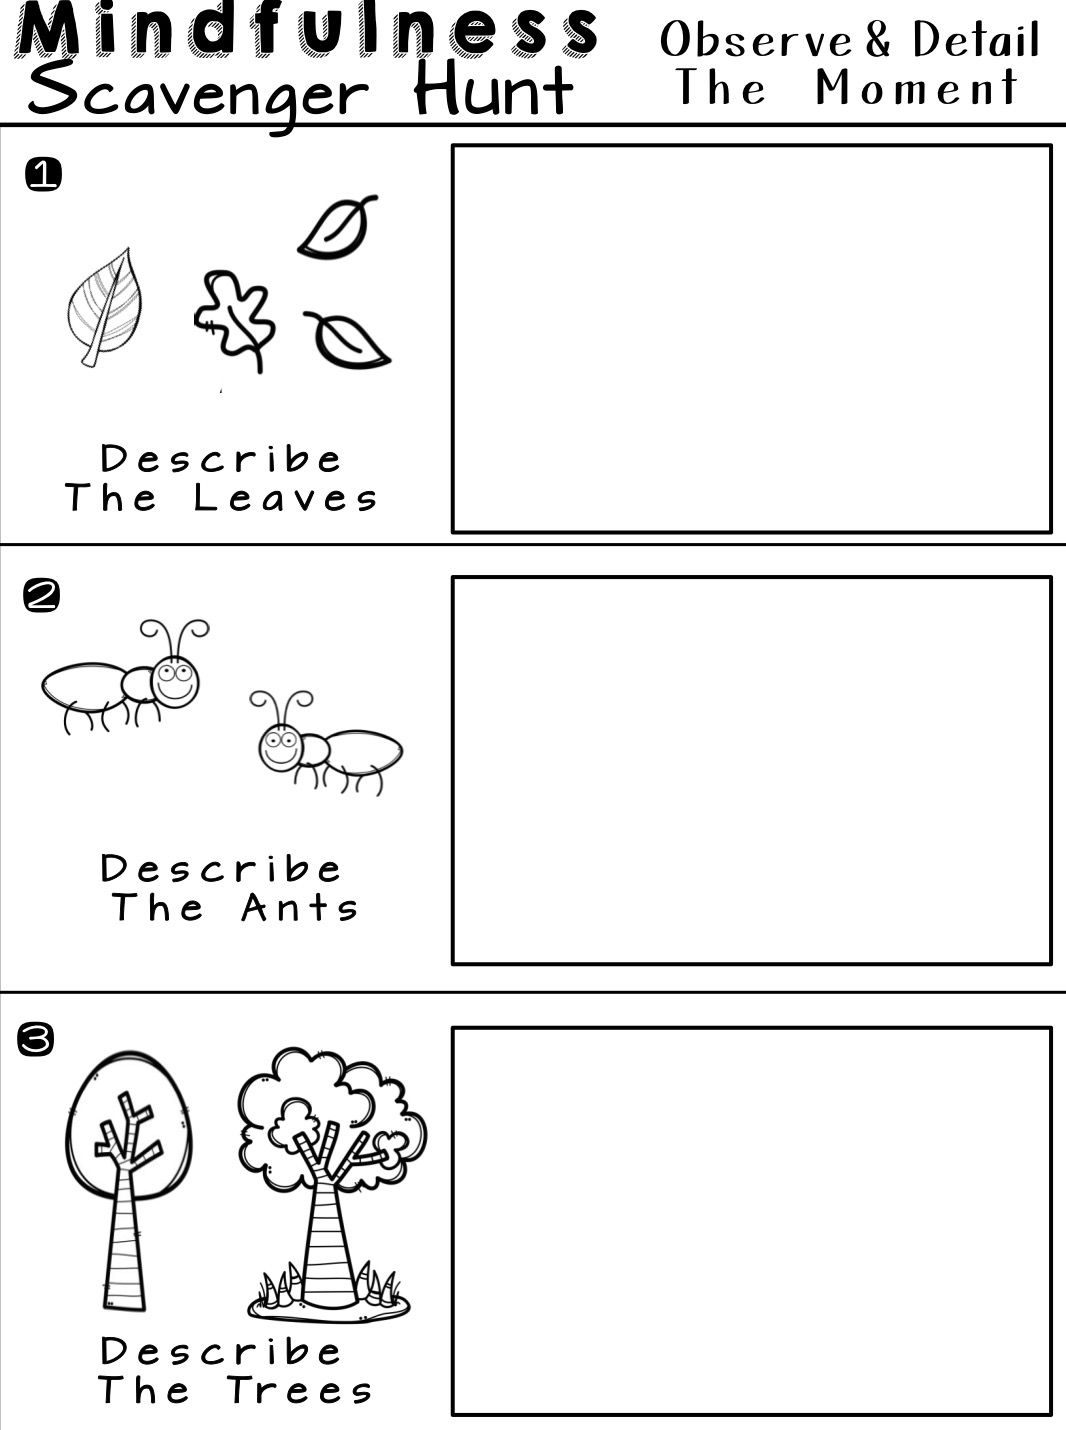 Mindfulness Scavenger Hunt Worksheets For Relaxation And